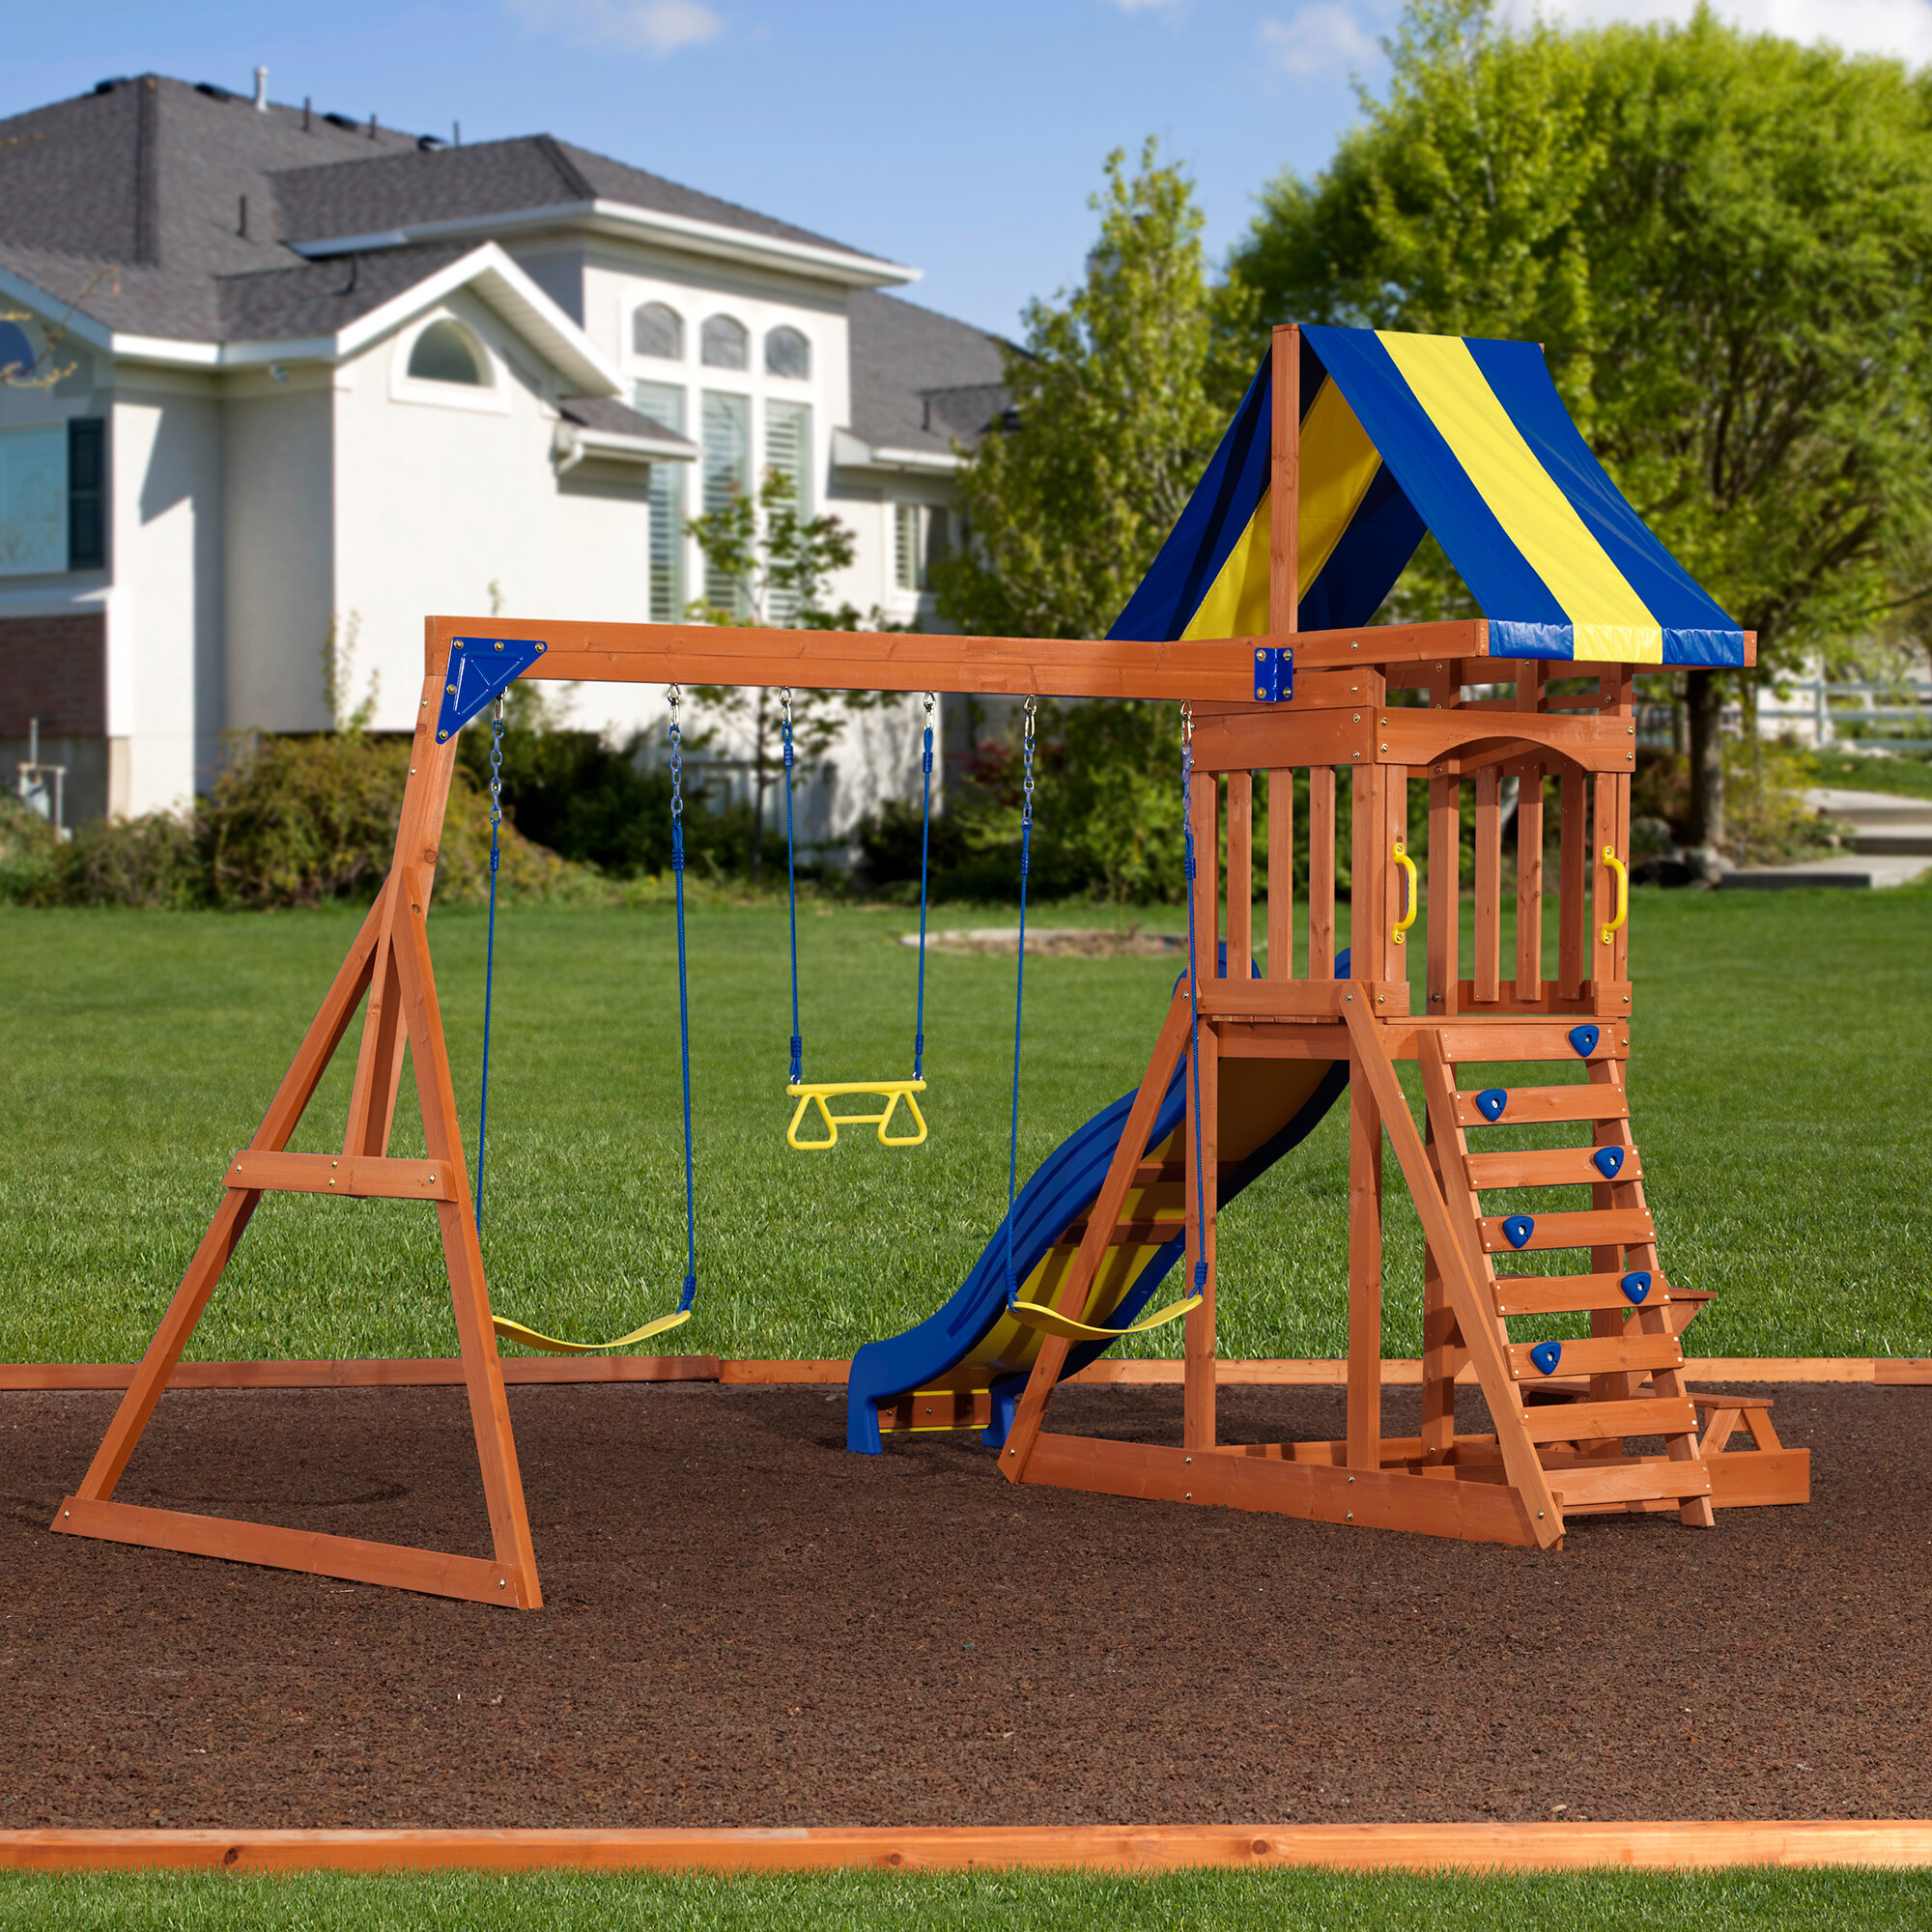 cedar liberty id bjs club set ii product recipeid backyard close undefined all discovery somerset swing wholesale wood profileid imageservice